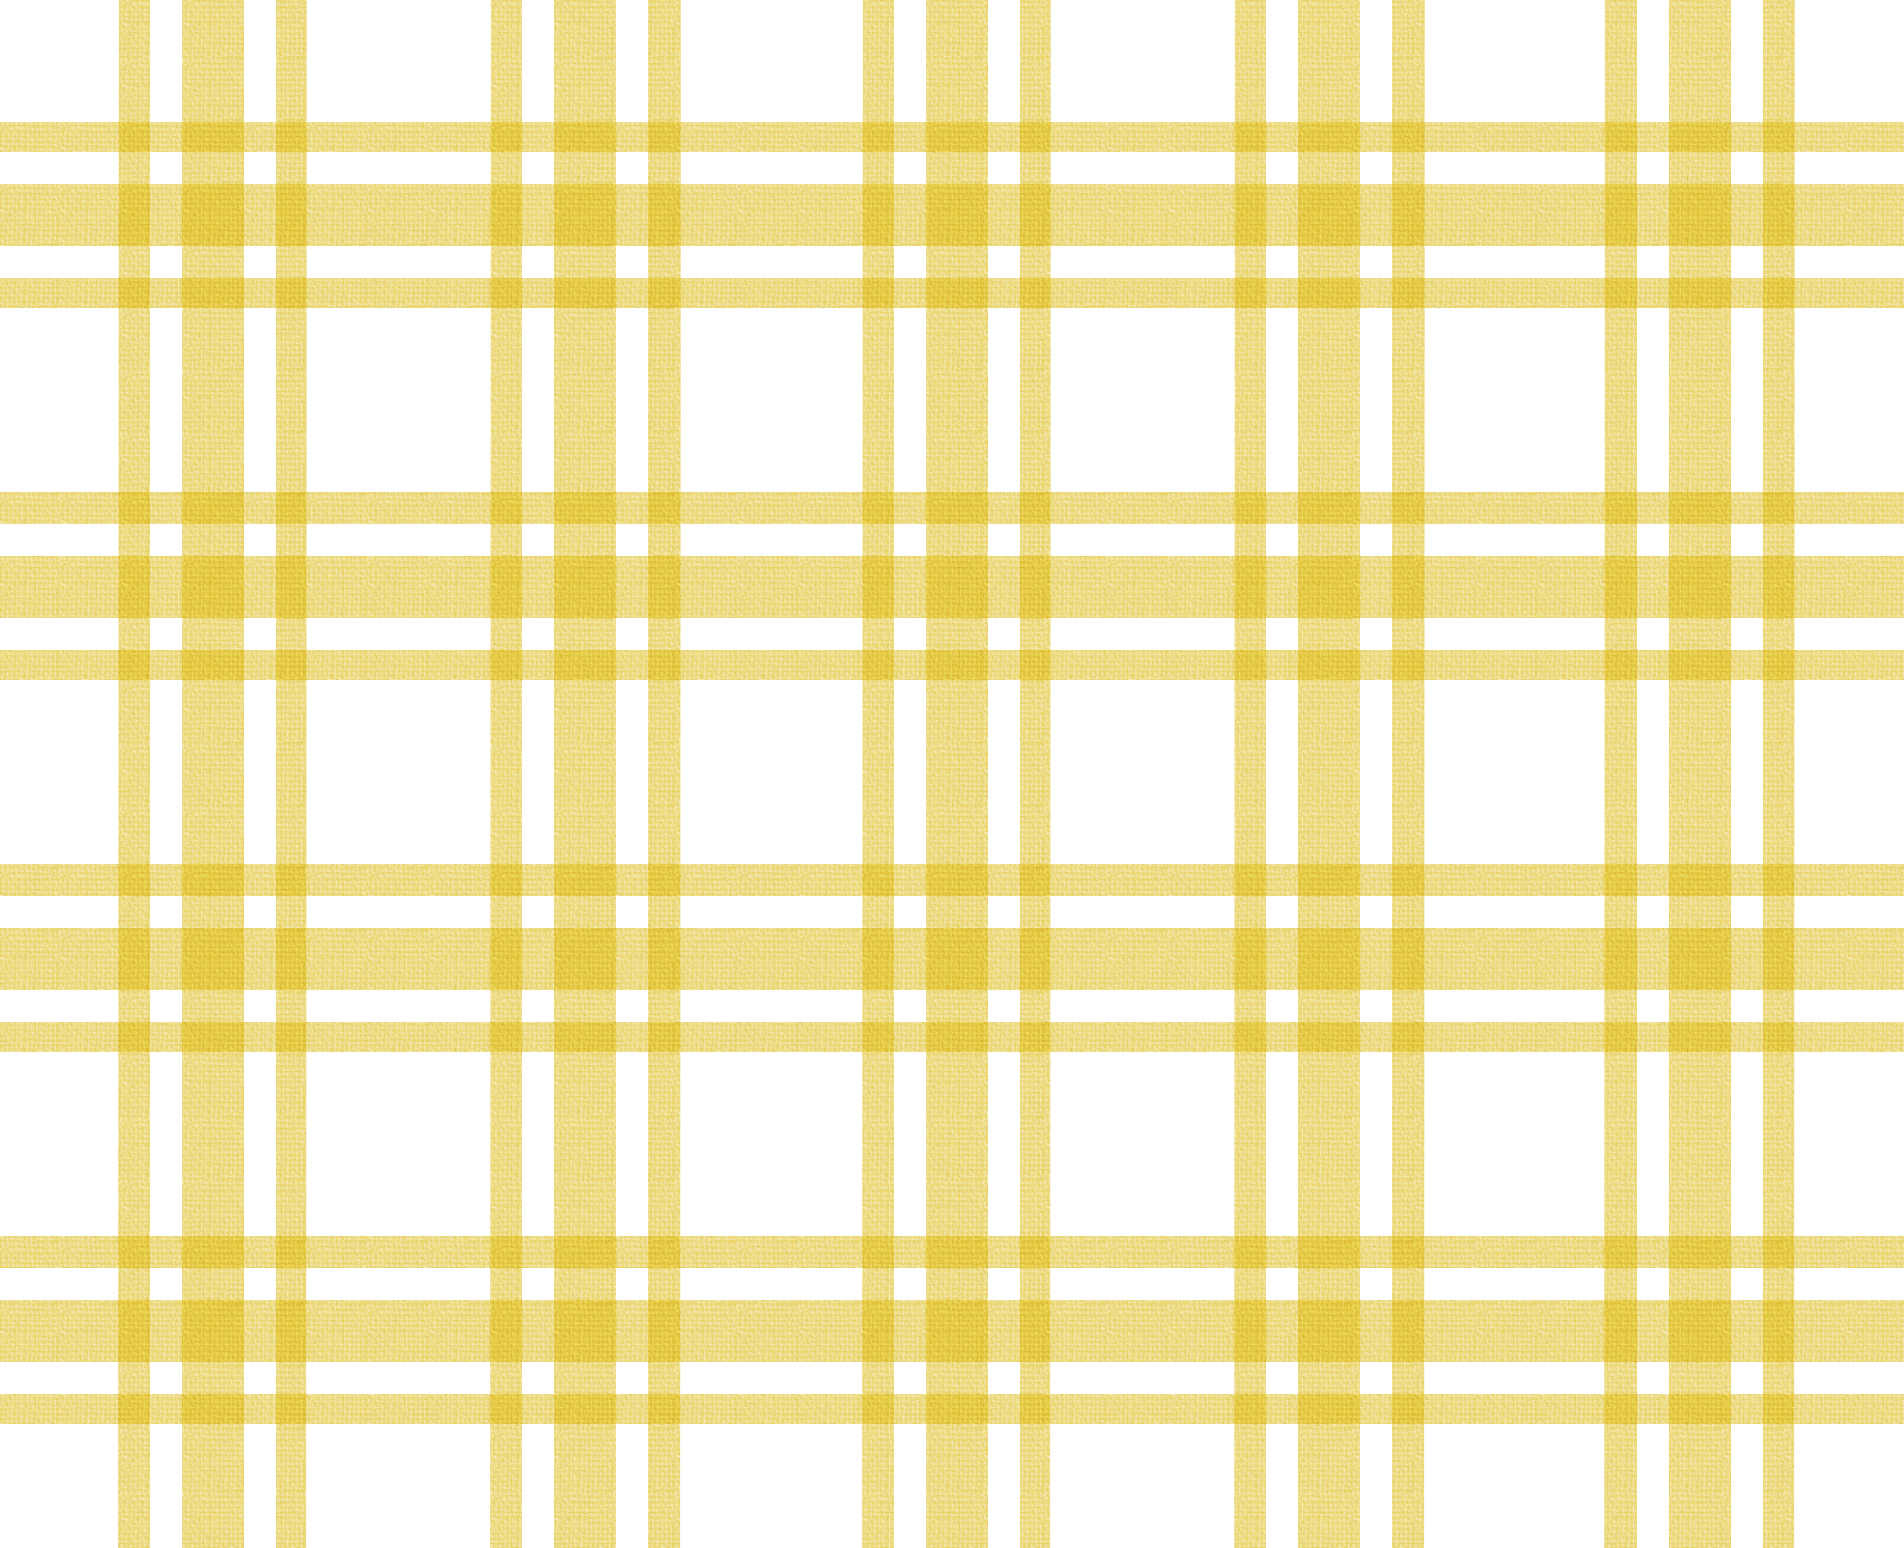 Yellow and white tablecloth pattern photo